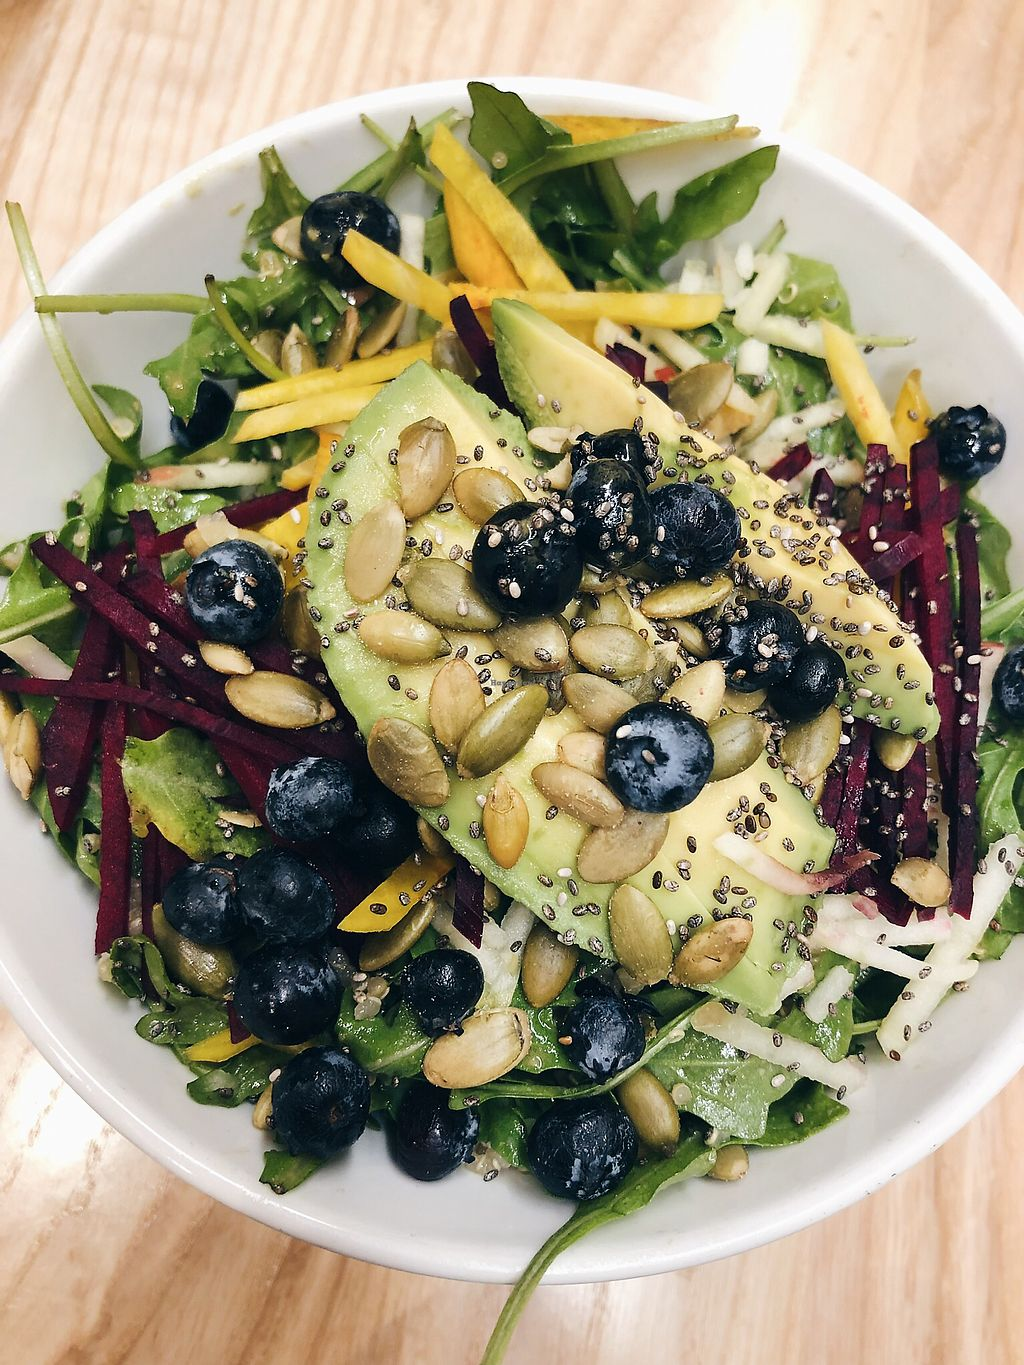 """Photo of Field Day  by <a href=""""/members/profile/laurenbitner"""">laurenbitner</a> <br/>Grain Energy Bowl <br/> April 16, 2018  - <a href='/contact/abuse/image/117058/386653'>Report</a>"""